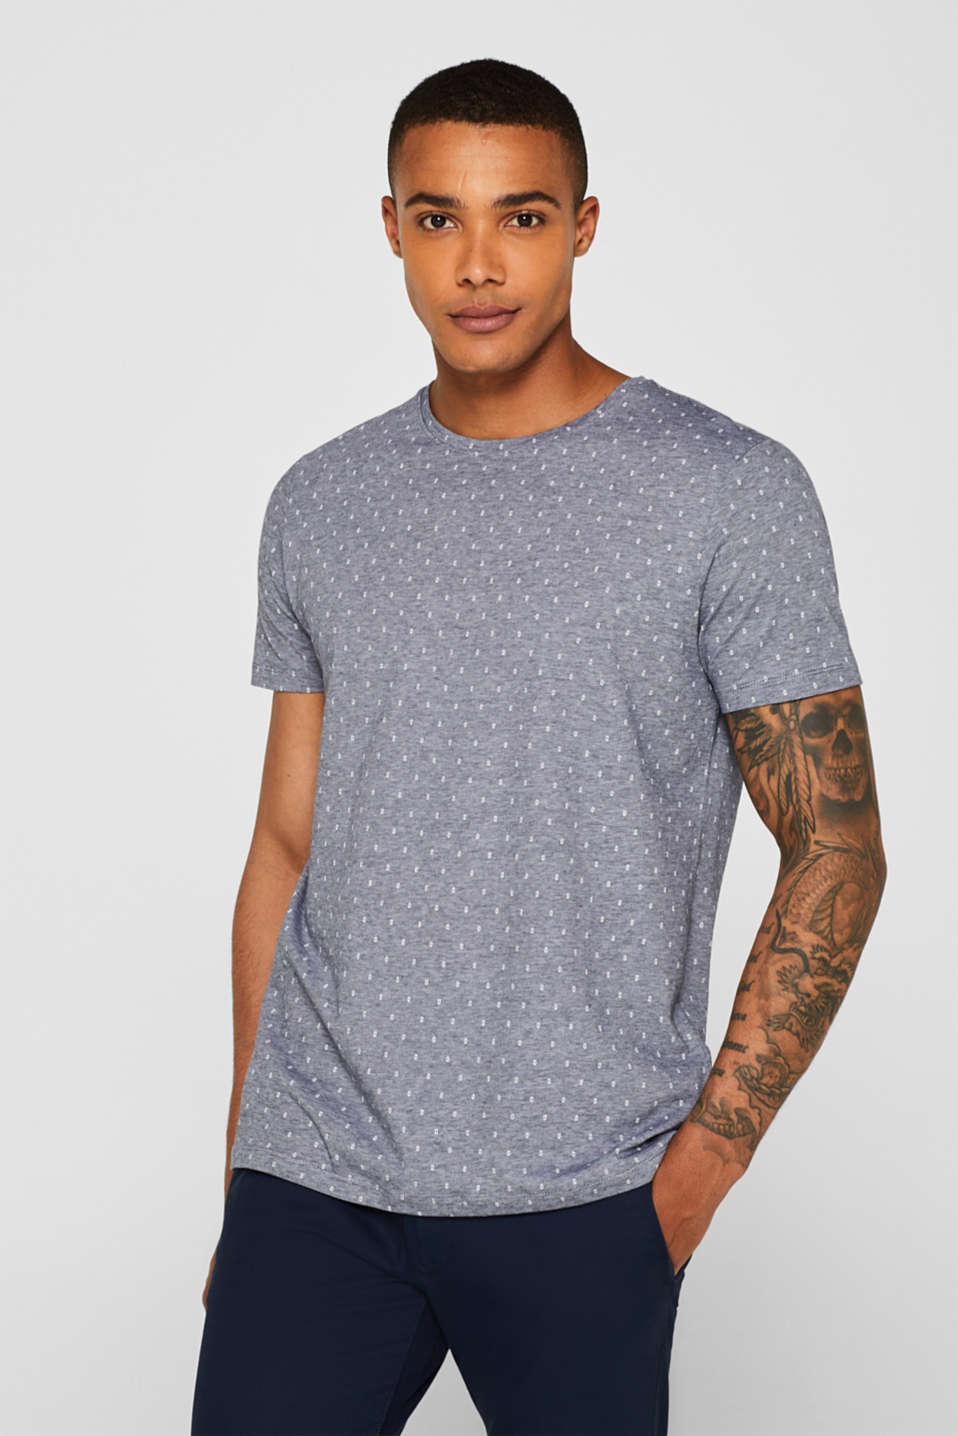 Esprit - Jersey top with an all-over print, 100% cotton